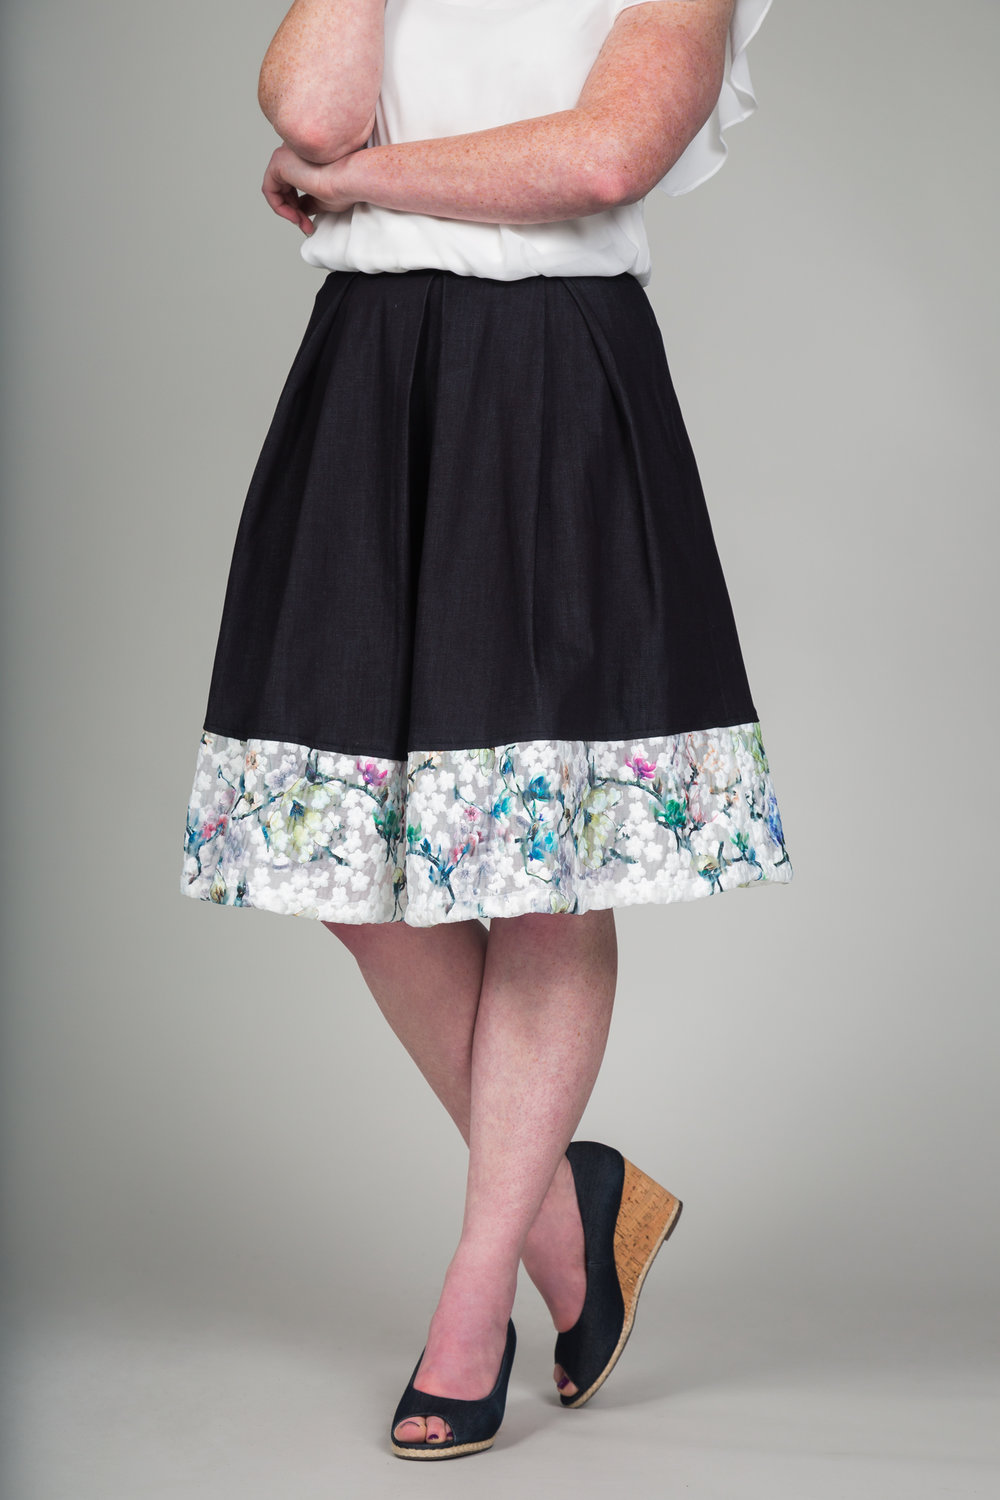 """This is my version of the professional denim skirt.  I incorporated the floral print as a border for the skirt to give it some color.  The box pleats both front and back gives the skirt structure and adds the the professional look.  By using a dark washed denim this skirt can worn to work or any other social event.  Overall, I wanted to create a cohesive collection and have pieces that you can pair with each other."" - BhavyJ"